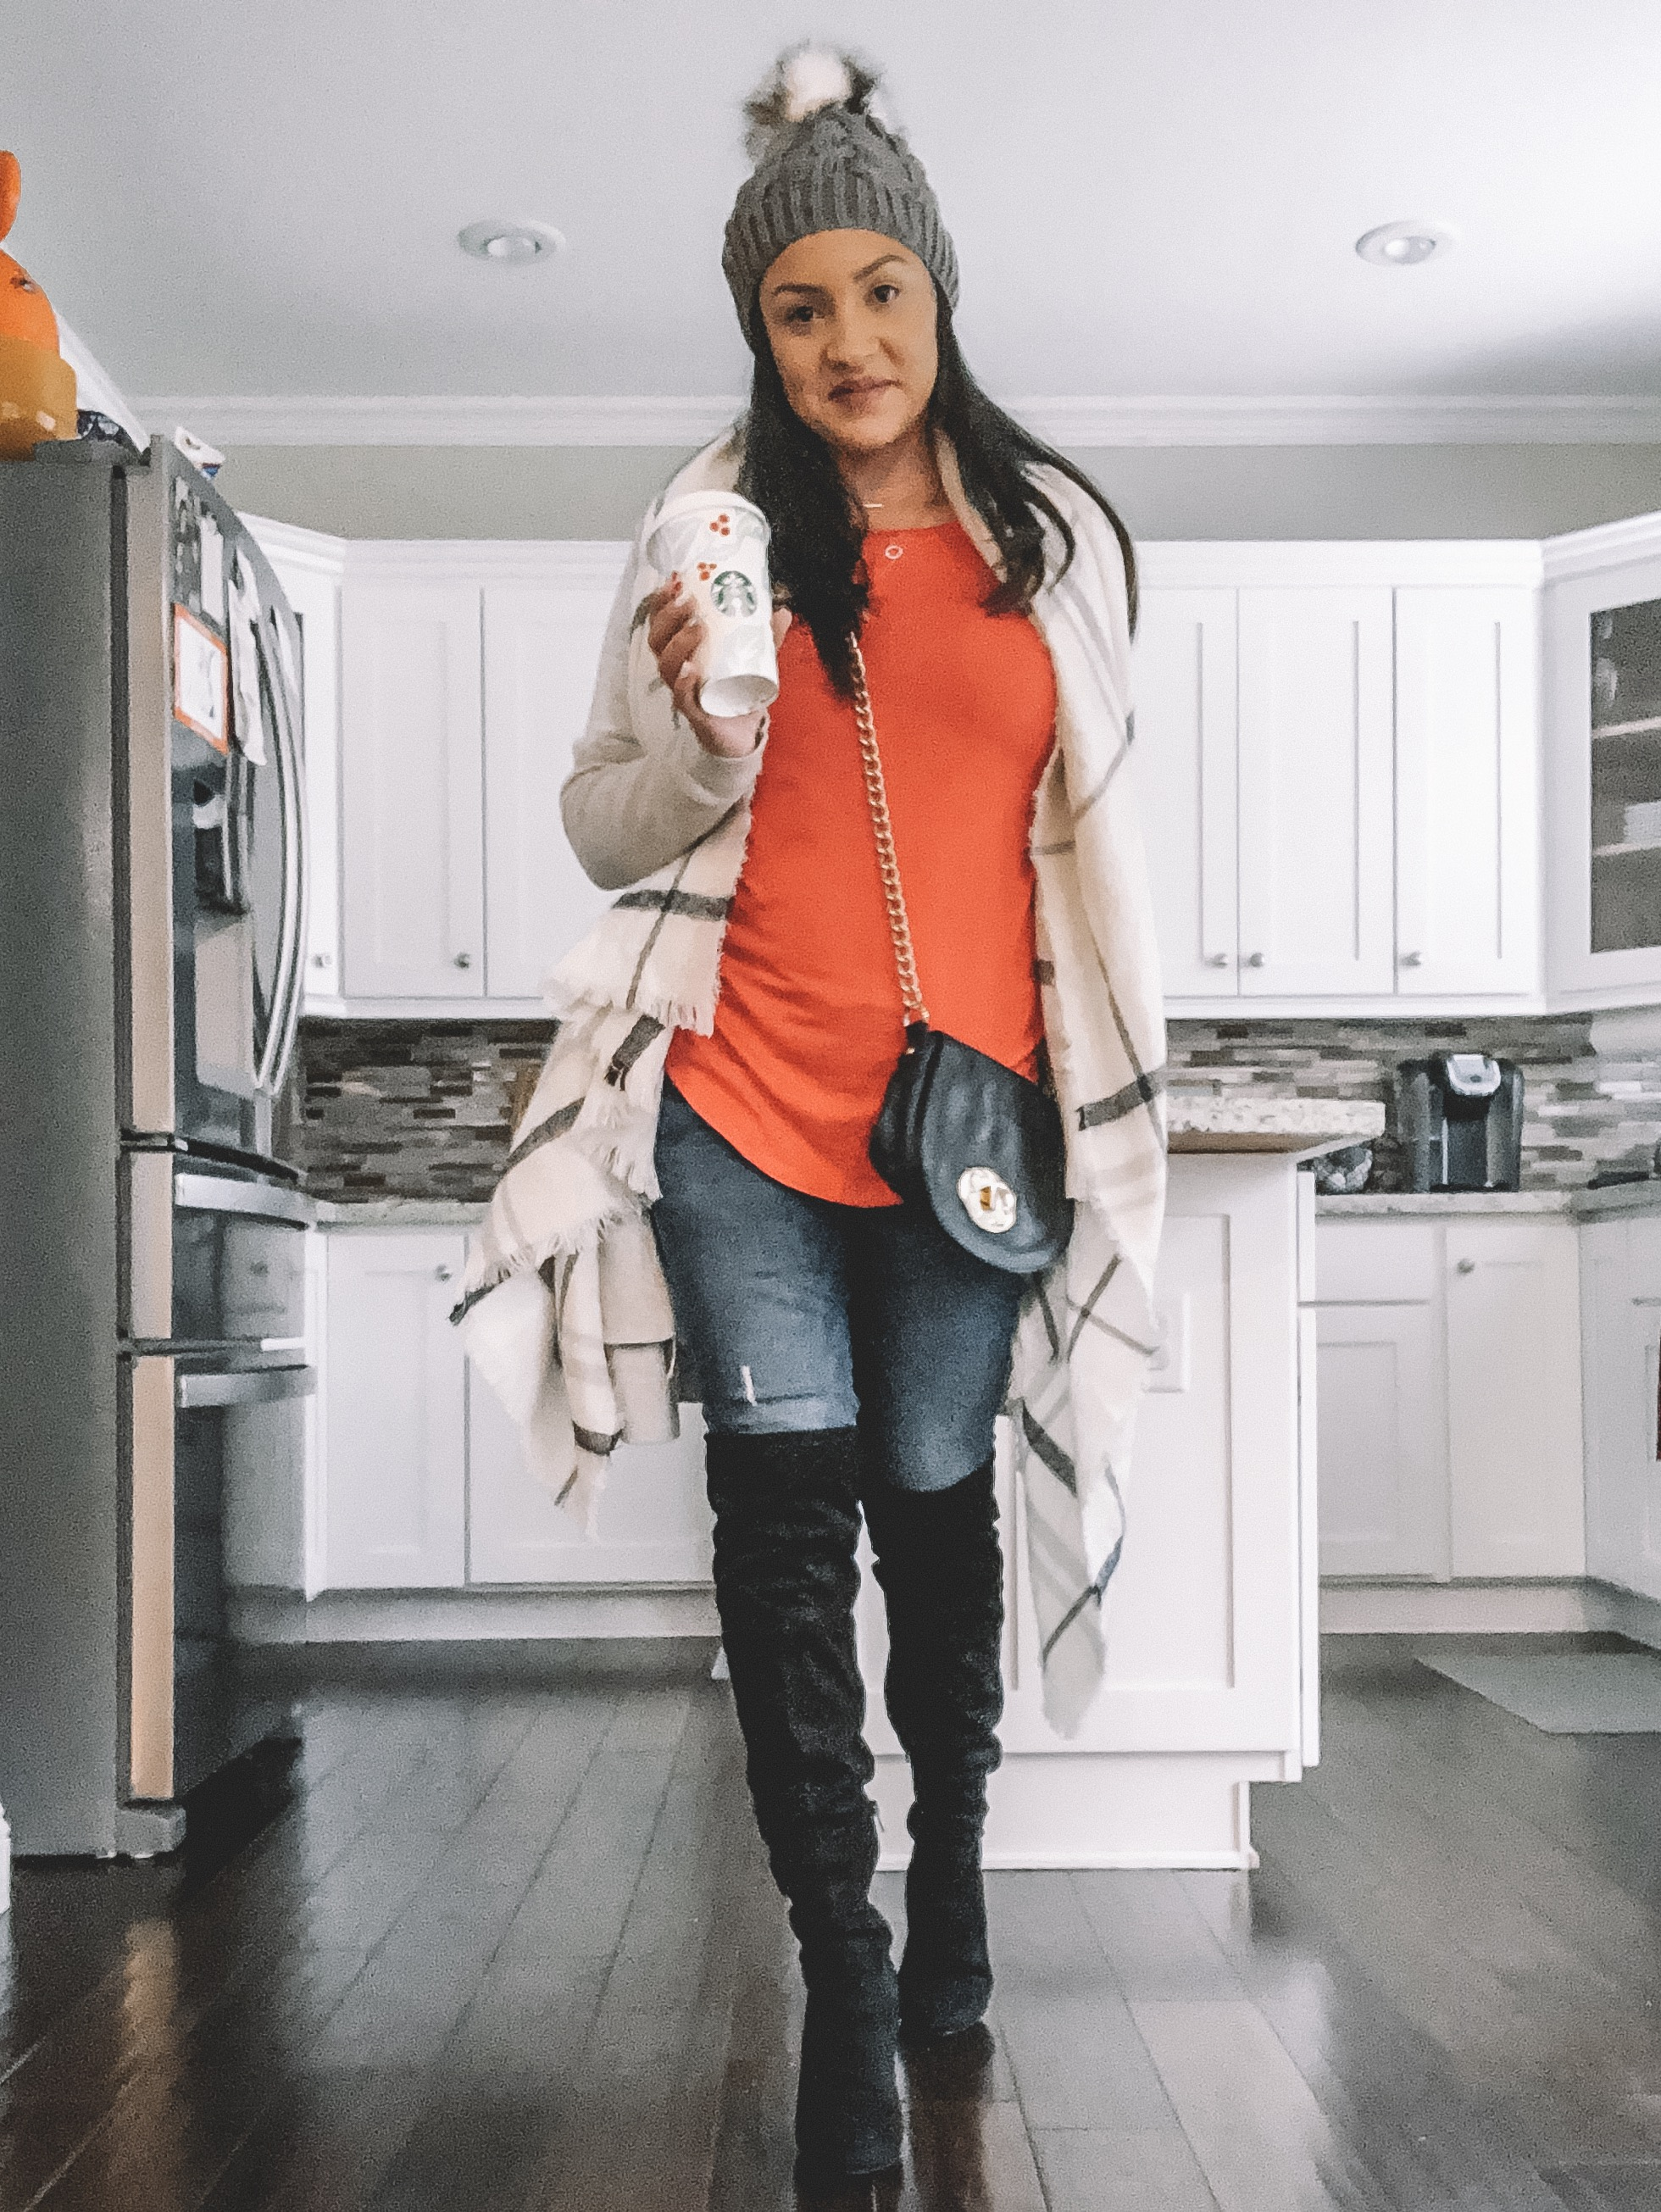 """Some of my """"go to"""" accessories this season include a pom beanie and plaid sweater. You can pair these with just about anything and dress up or down. They're so fun and you can buy them in so many colors!"""